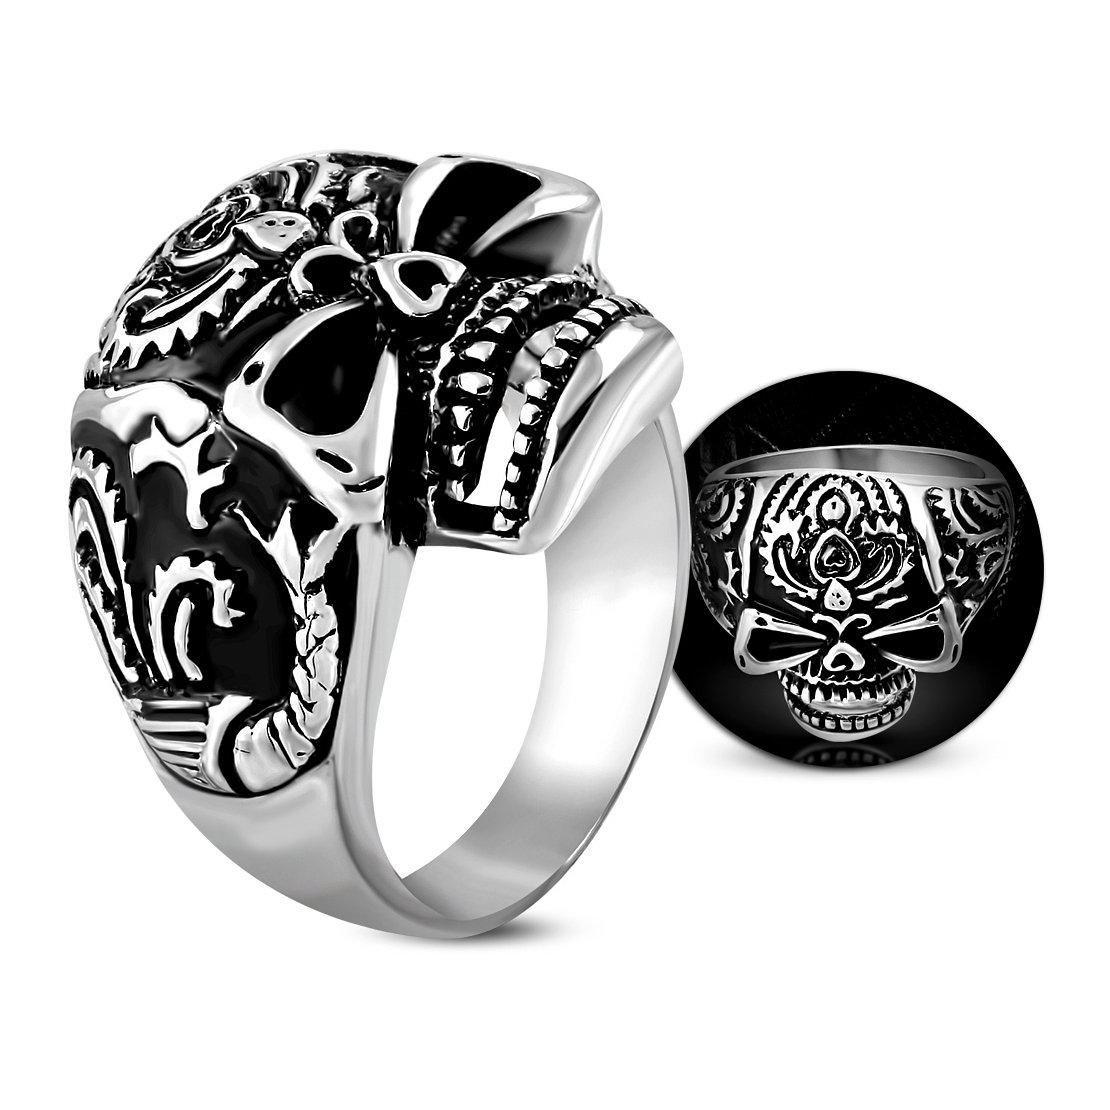 Stainless Steel 2 Color Vintage Gothic Ghost Skull Brain Biker Ring